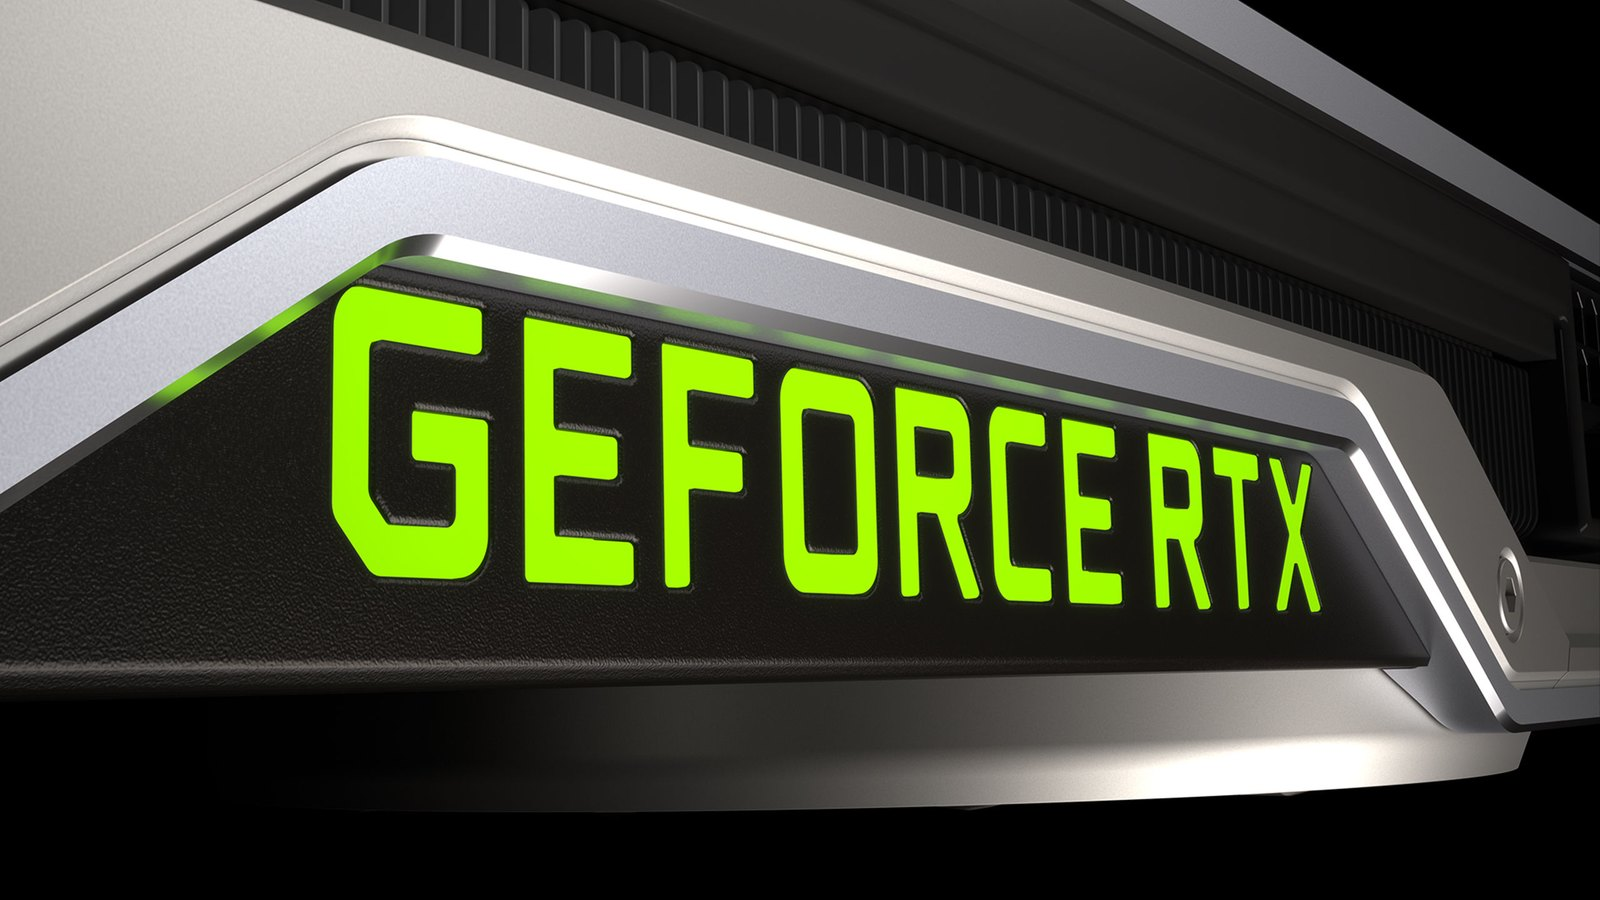 hashrate test mining videocards nvidia geforce rtx 2080ti